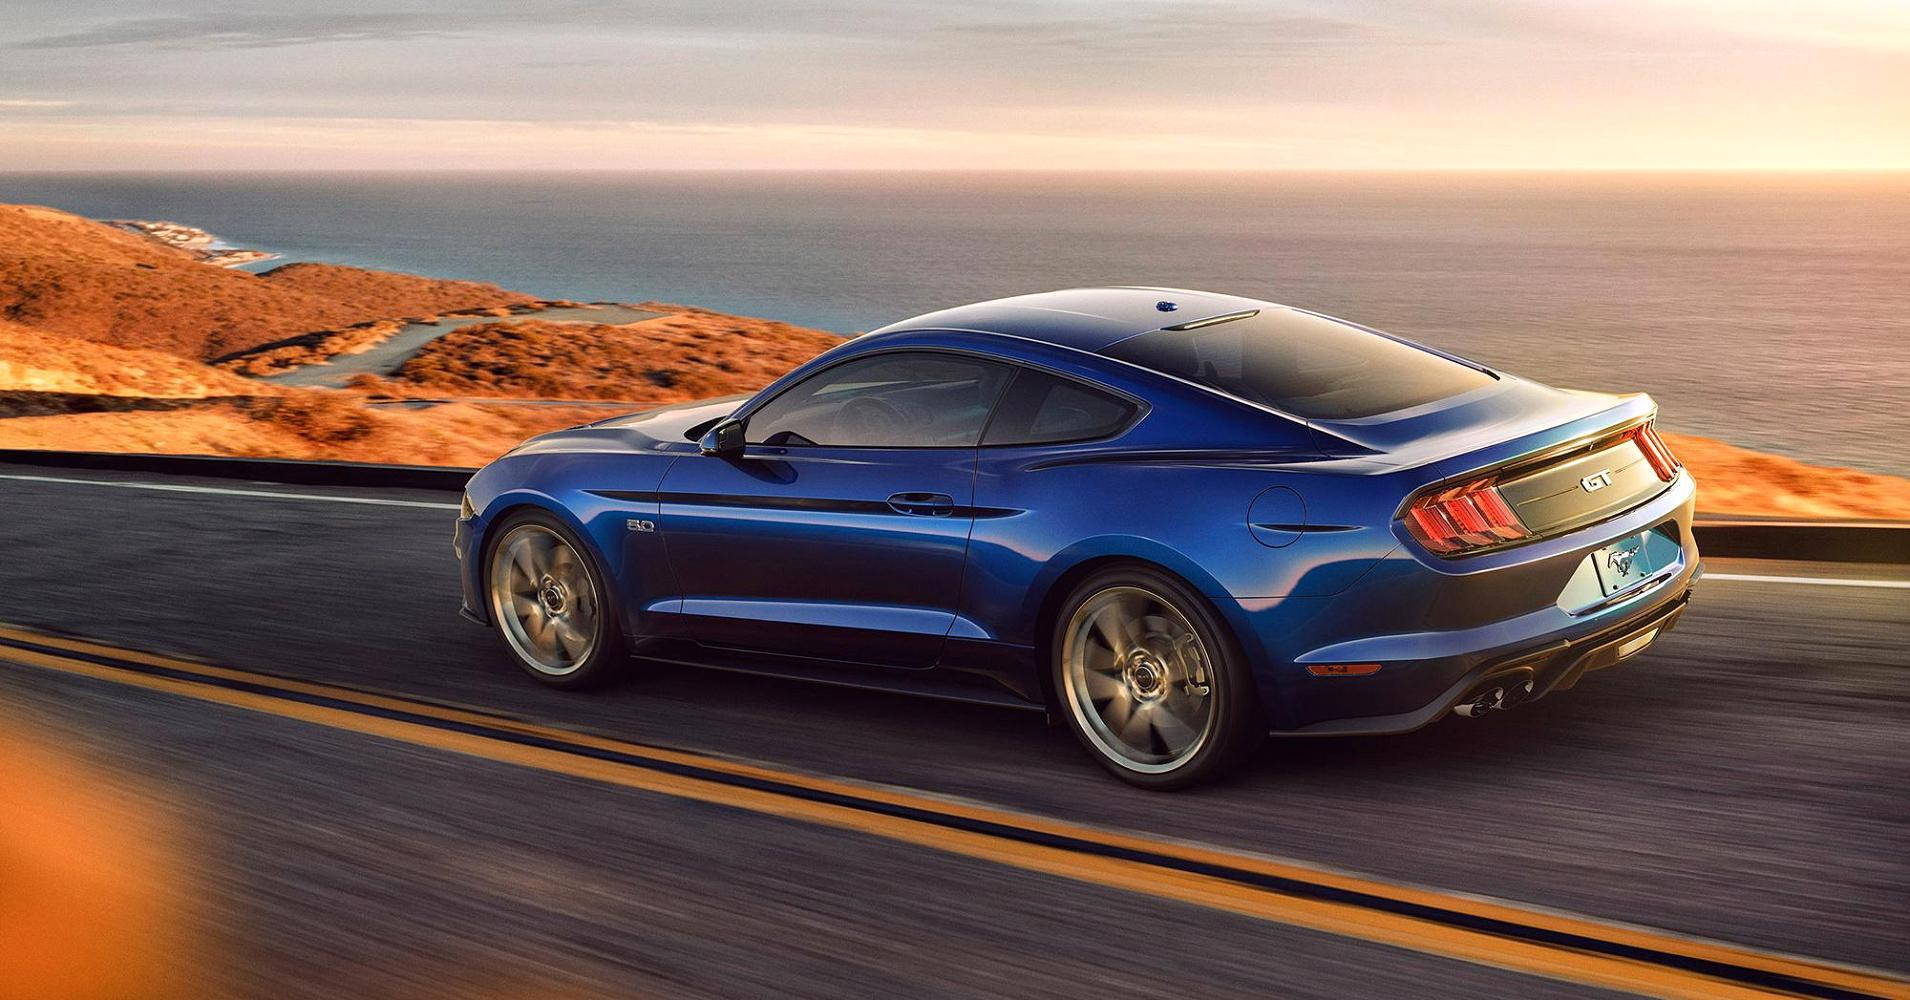 Ford unveils 2018 Mustang: Look, who's buying it now